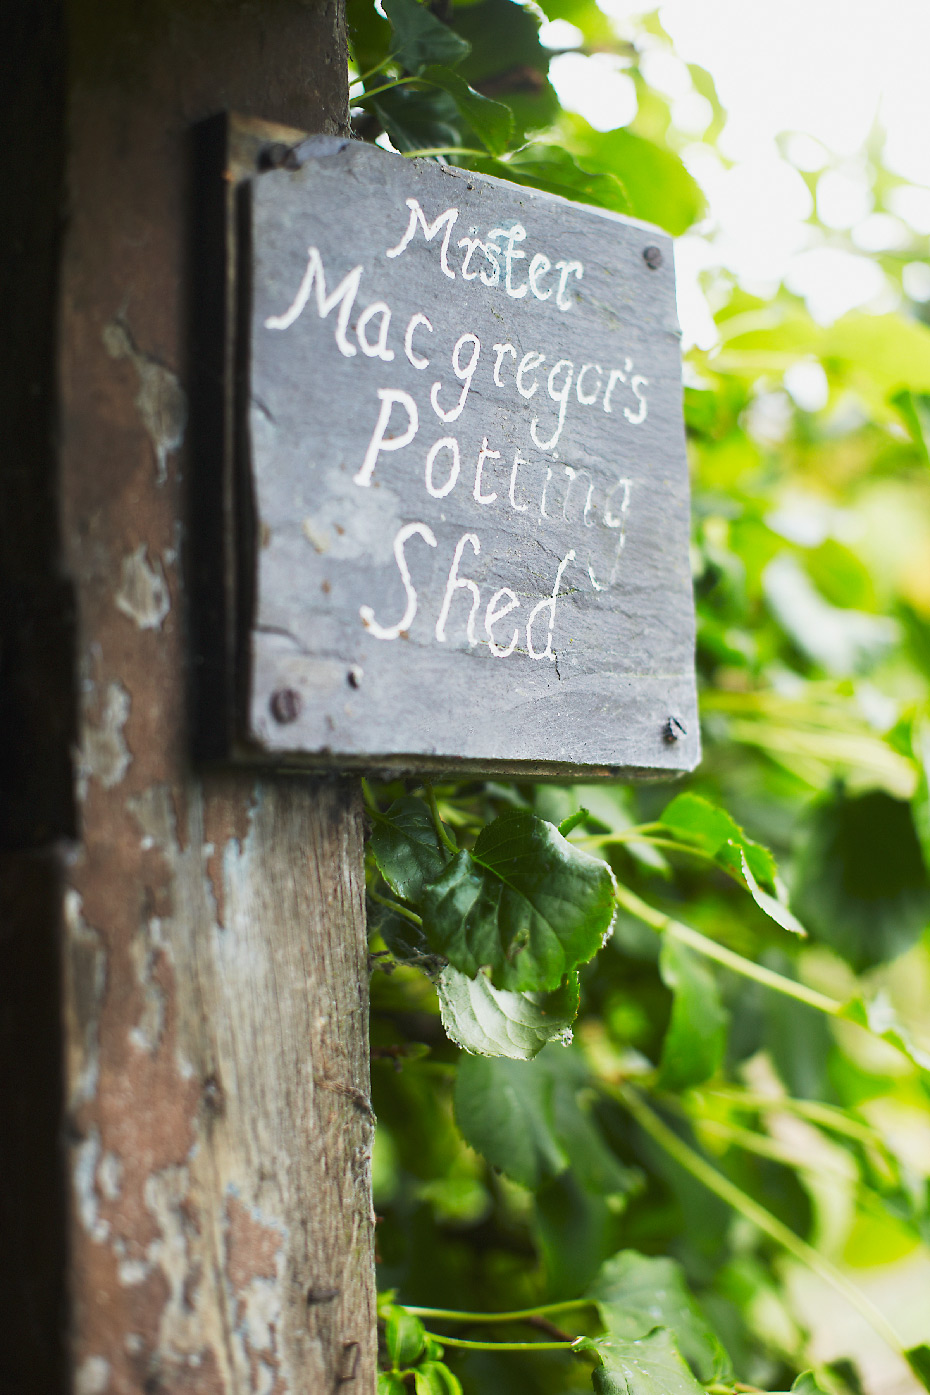 Stacey Van Berkel Photography I Mister Macgregor's Potting Shed sign I Gwaenynog, Wales I Beatrix Potter